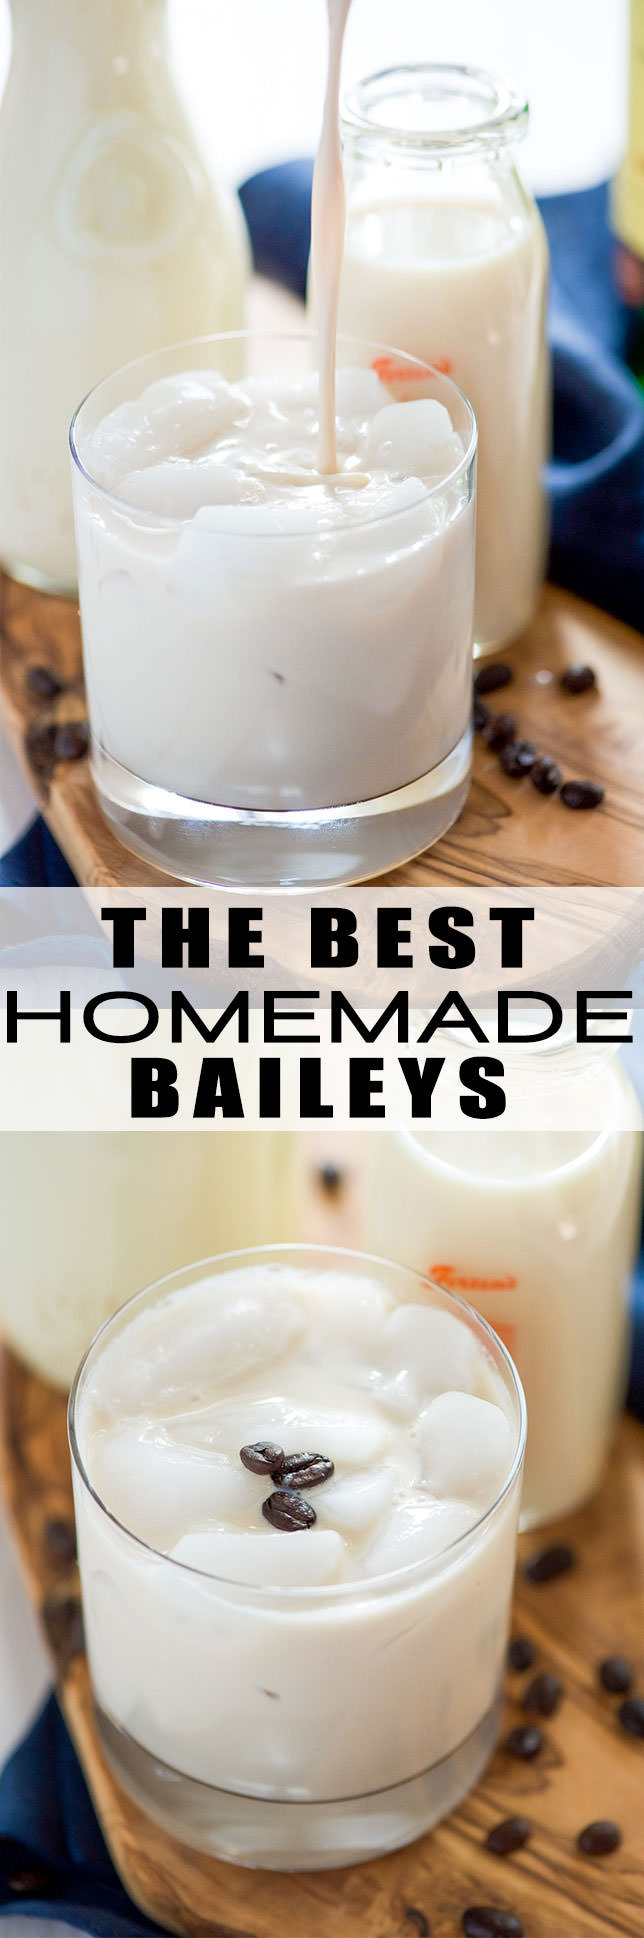 The Best Homemade Baileys Irish Cream - With Salt and Wit